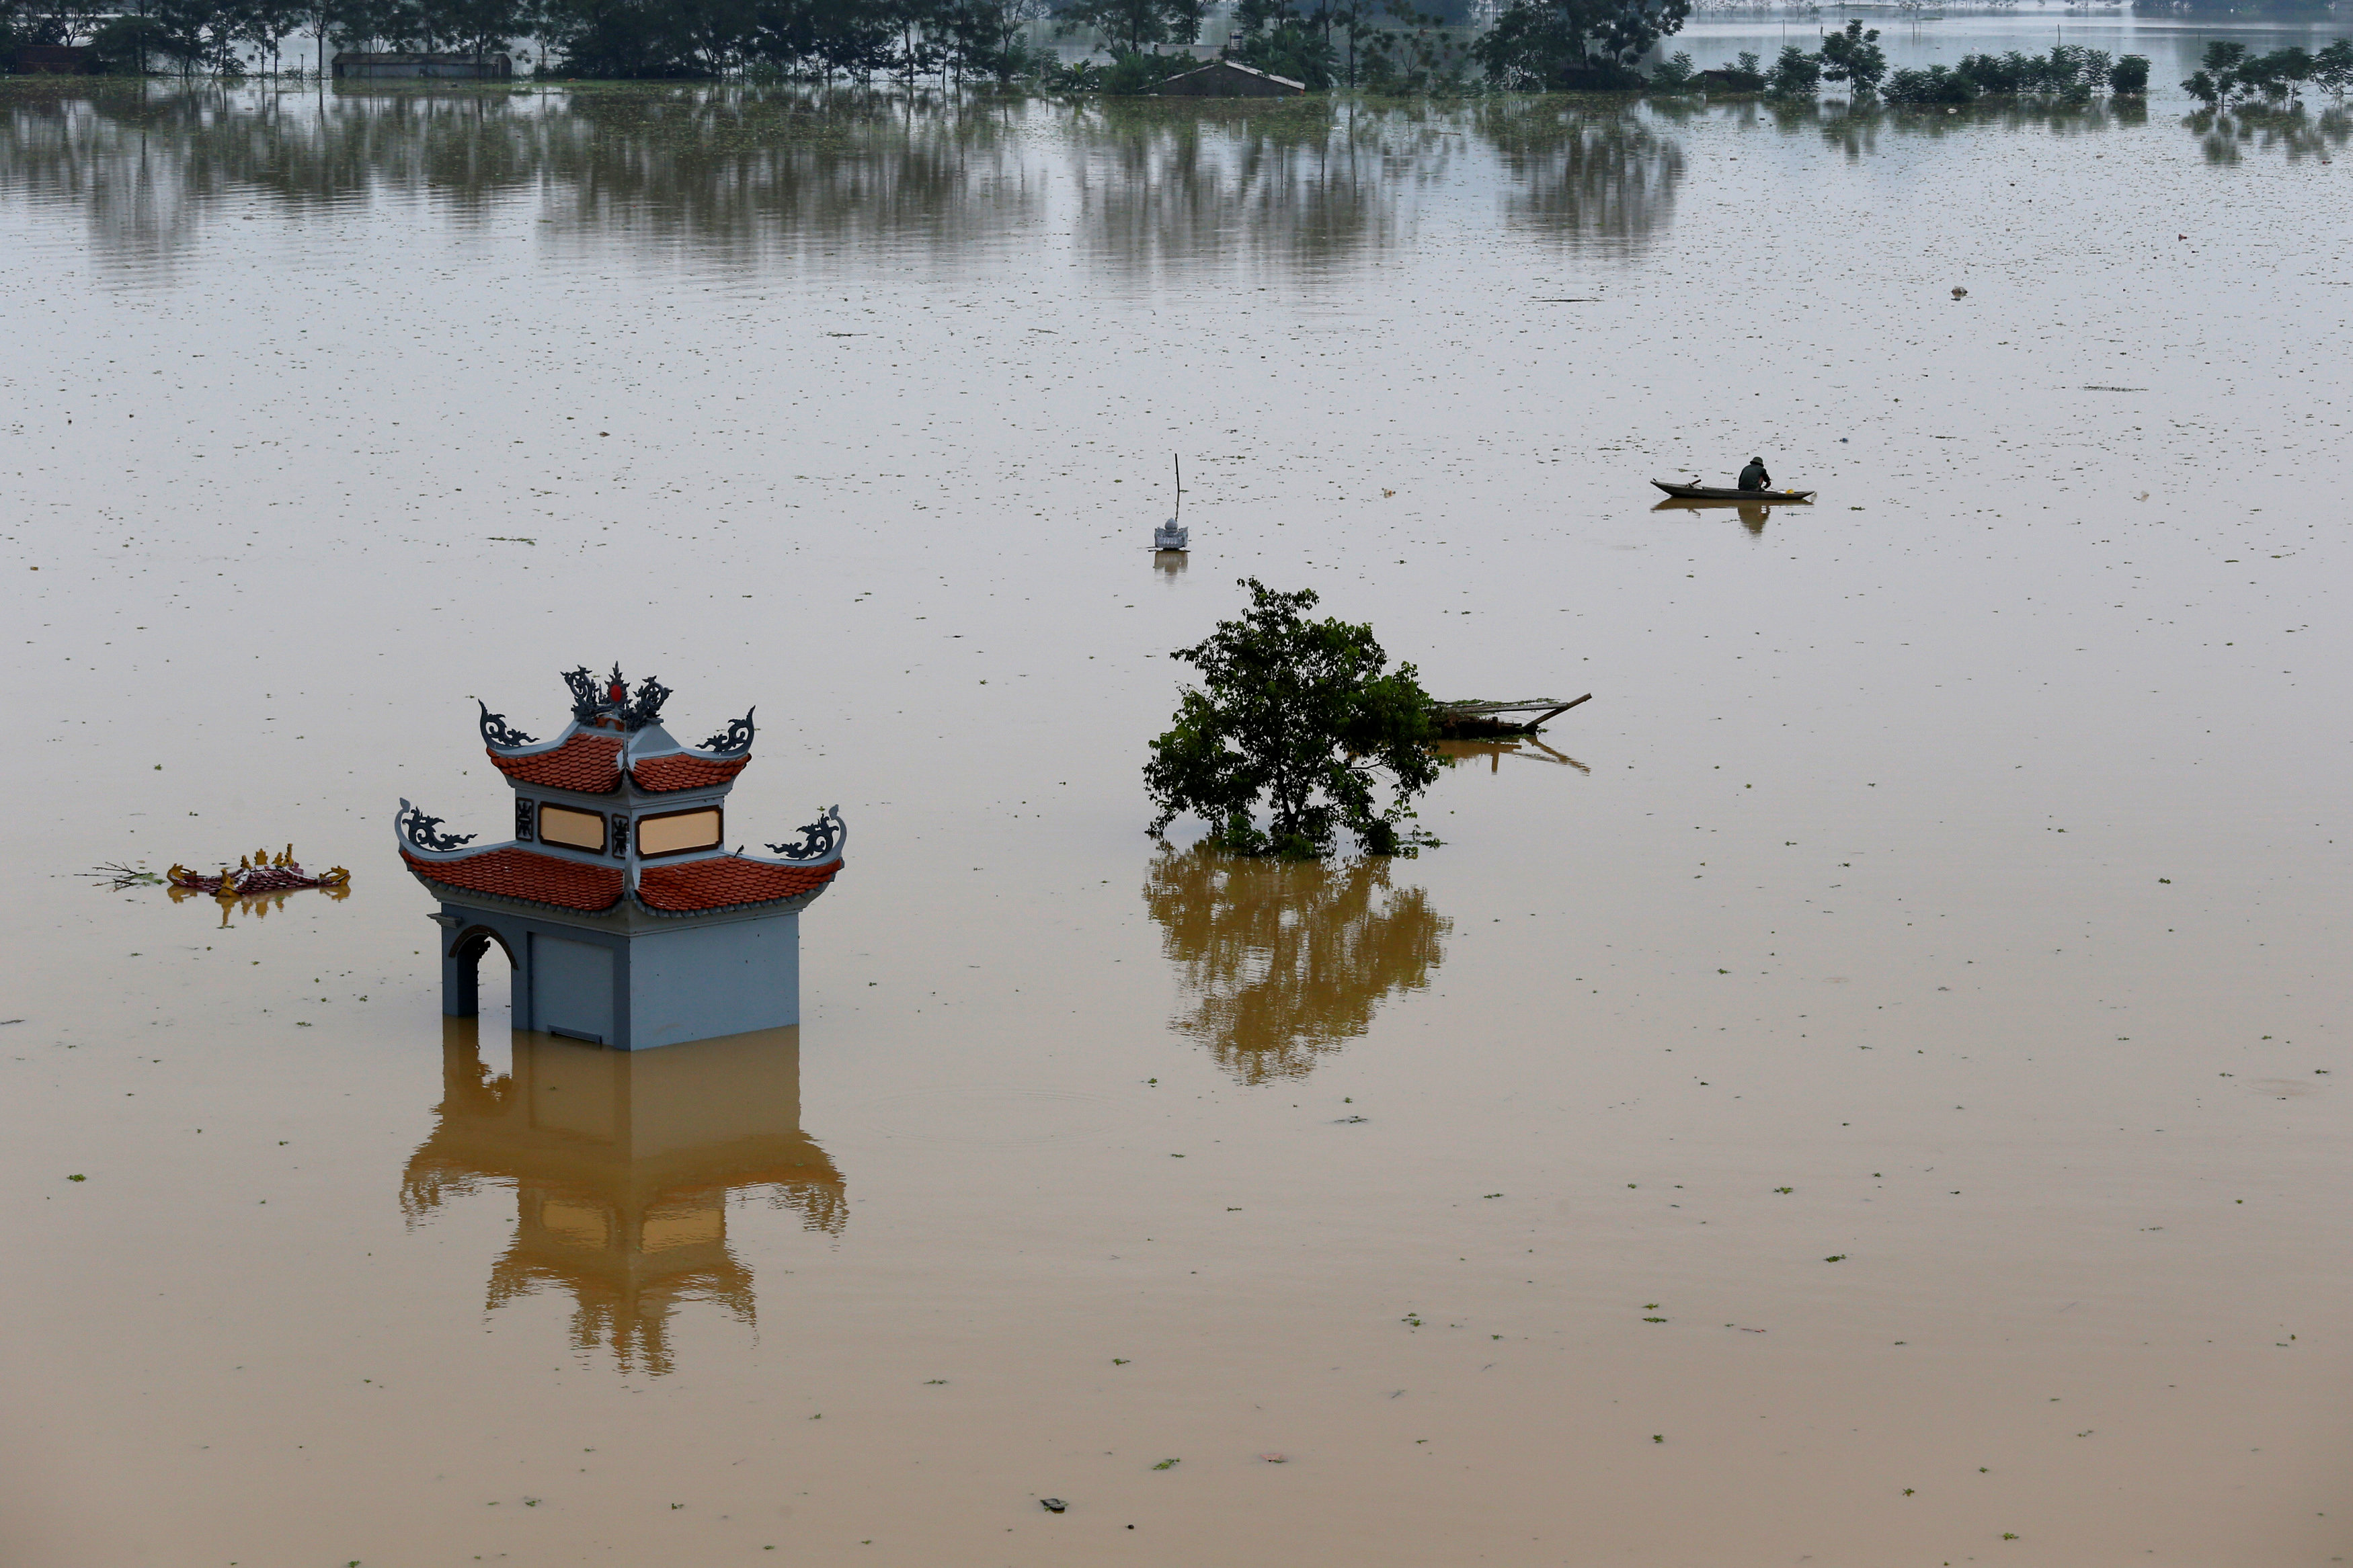 A farmer catches fish in a flooded village after a tropical depression in Hanoi, Vietnam October 13, 2017. Photo: Reuters